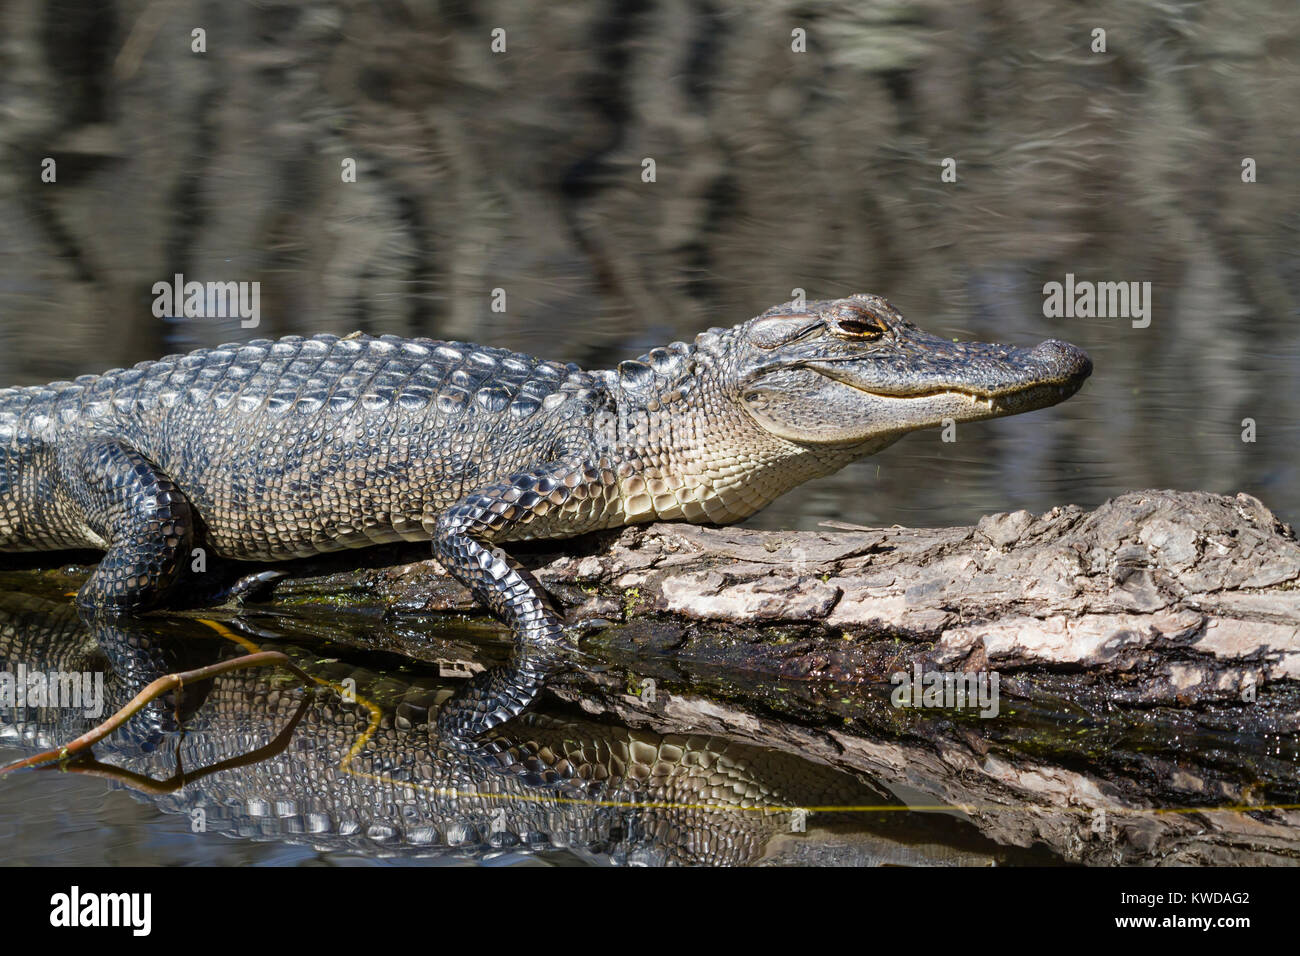 Young alligator taking of sun bath - Stock Image